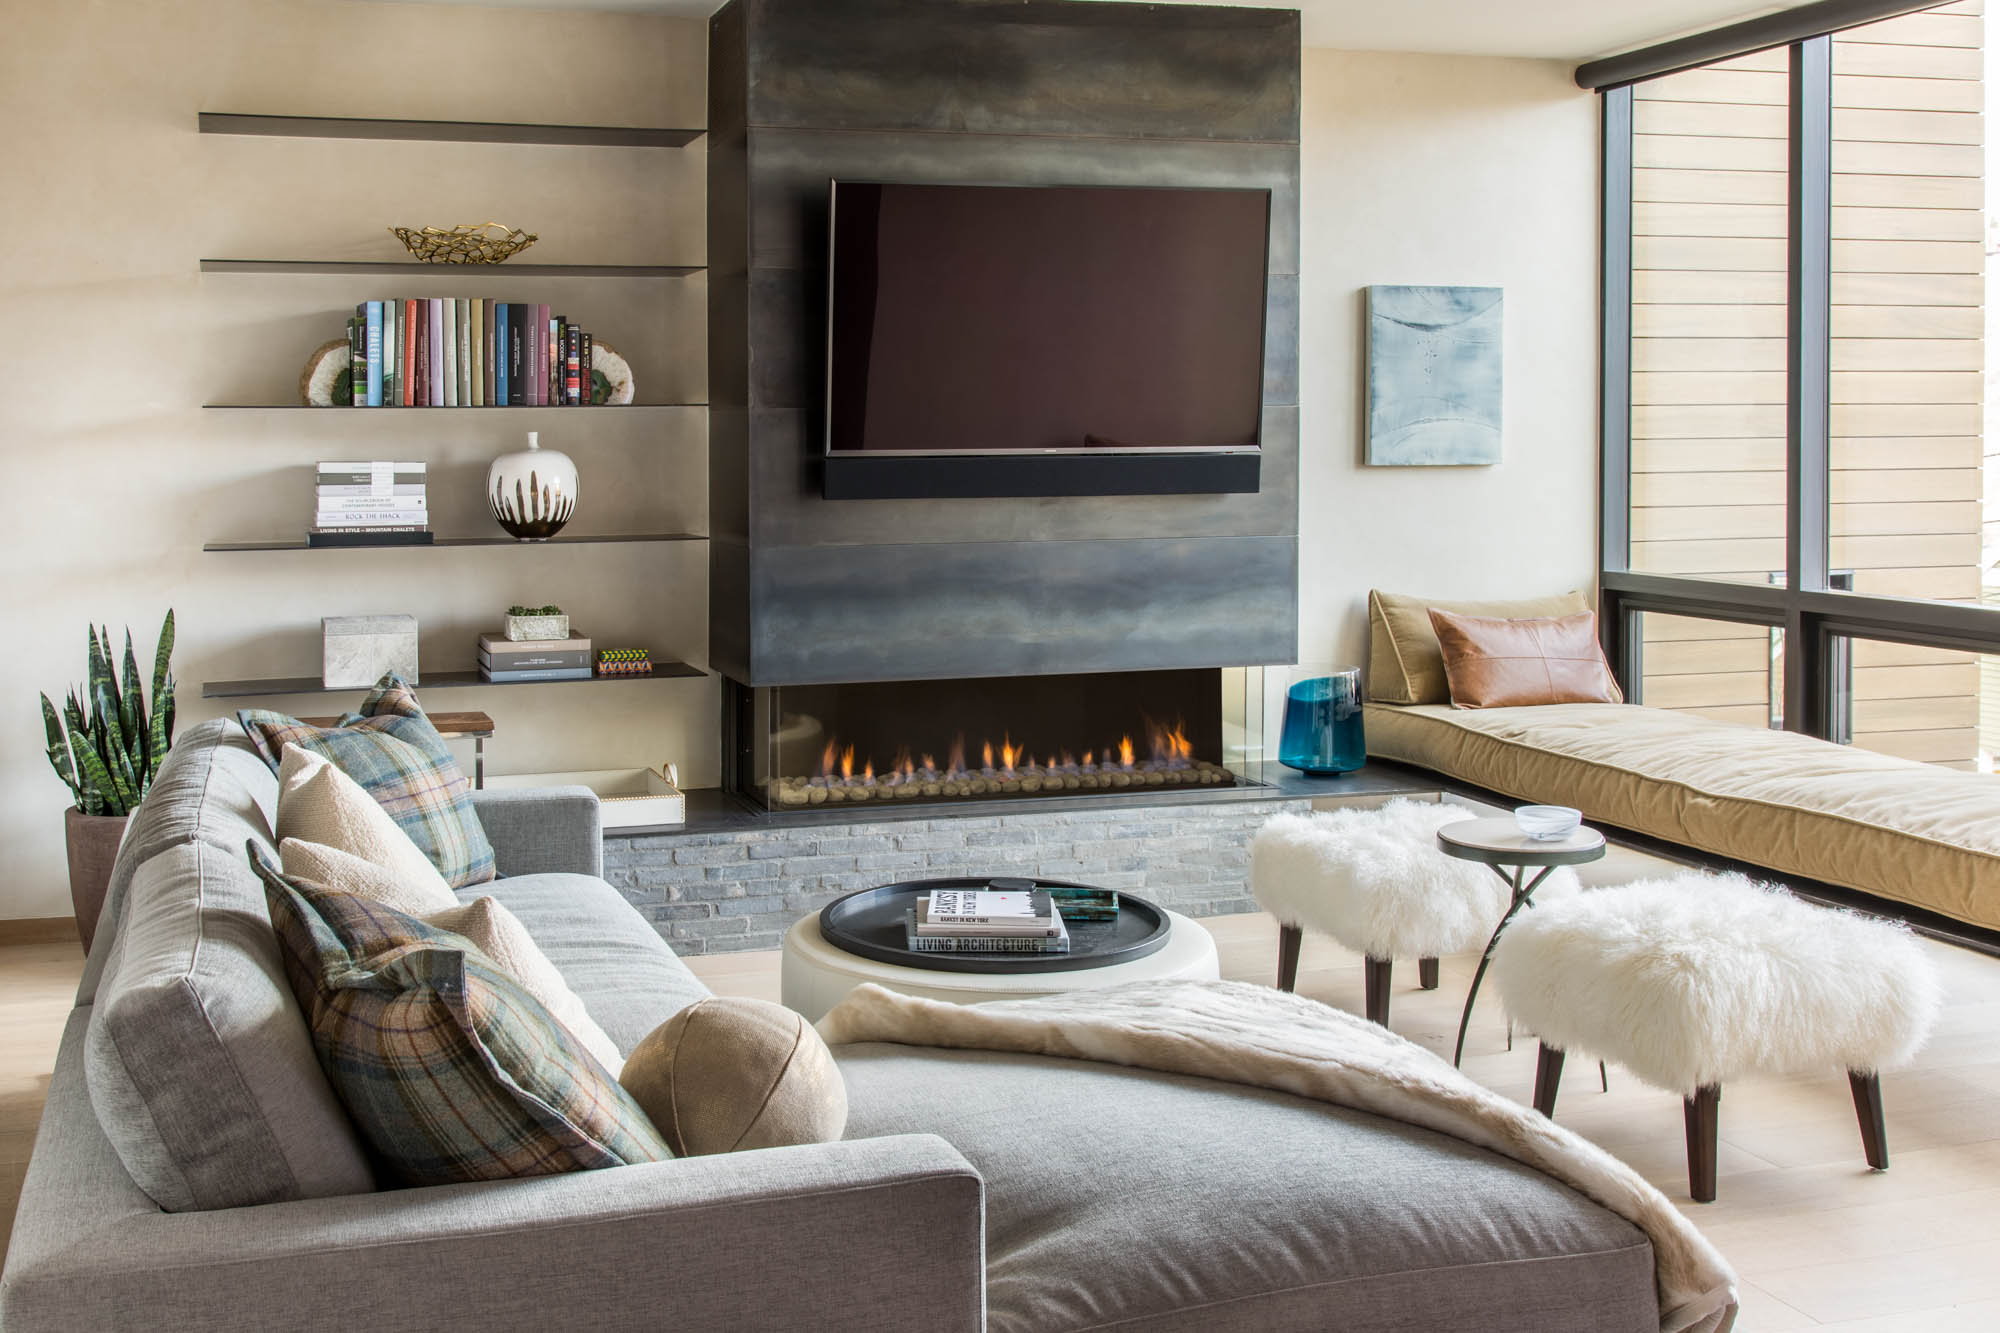 Suite B Living Room At The Mike Mueller Residence In Park City Utah Architecture And Interior Design By Oz Architects